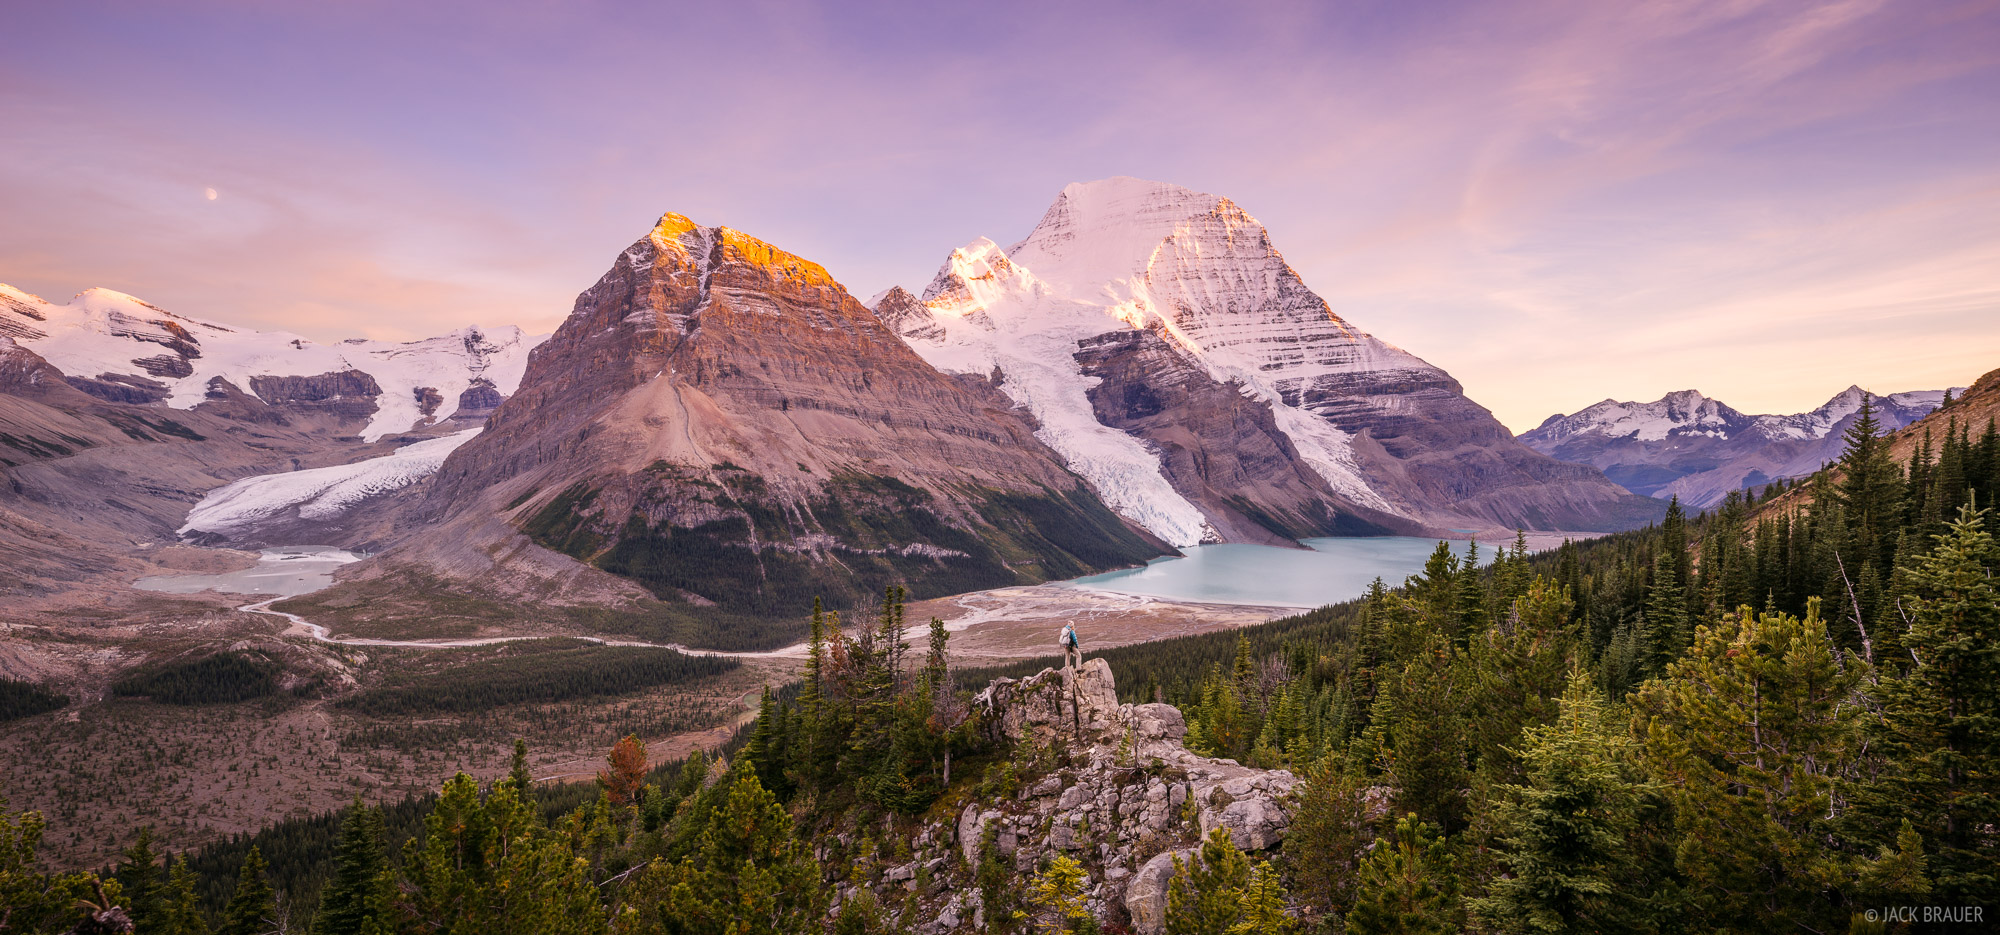 Sunset view of Berg Lake, Mount Robson (right) and Rearguard Mountain (left). The Robson Glacier is visible in the left valley...